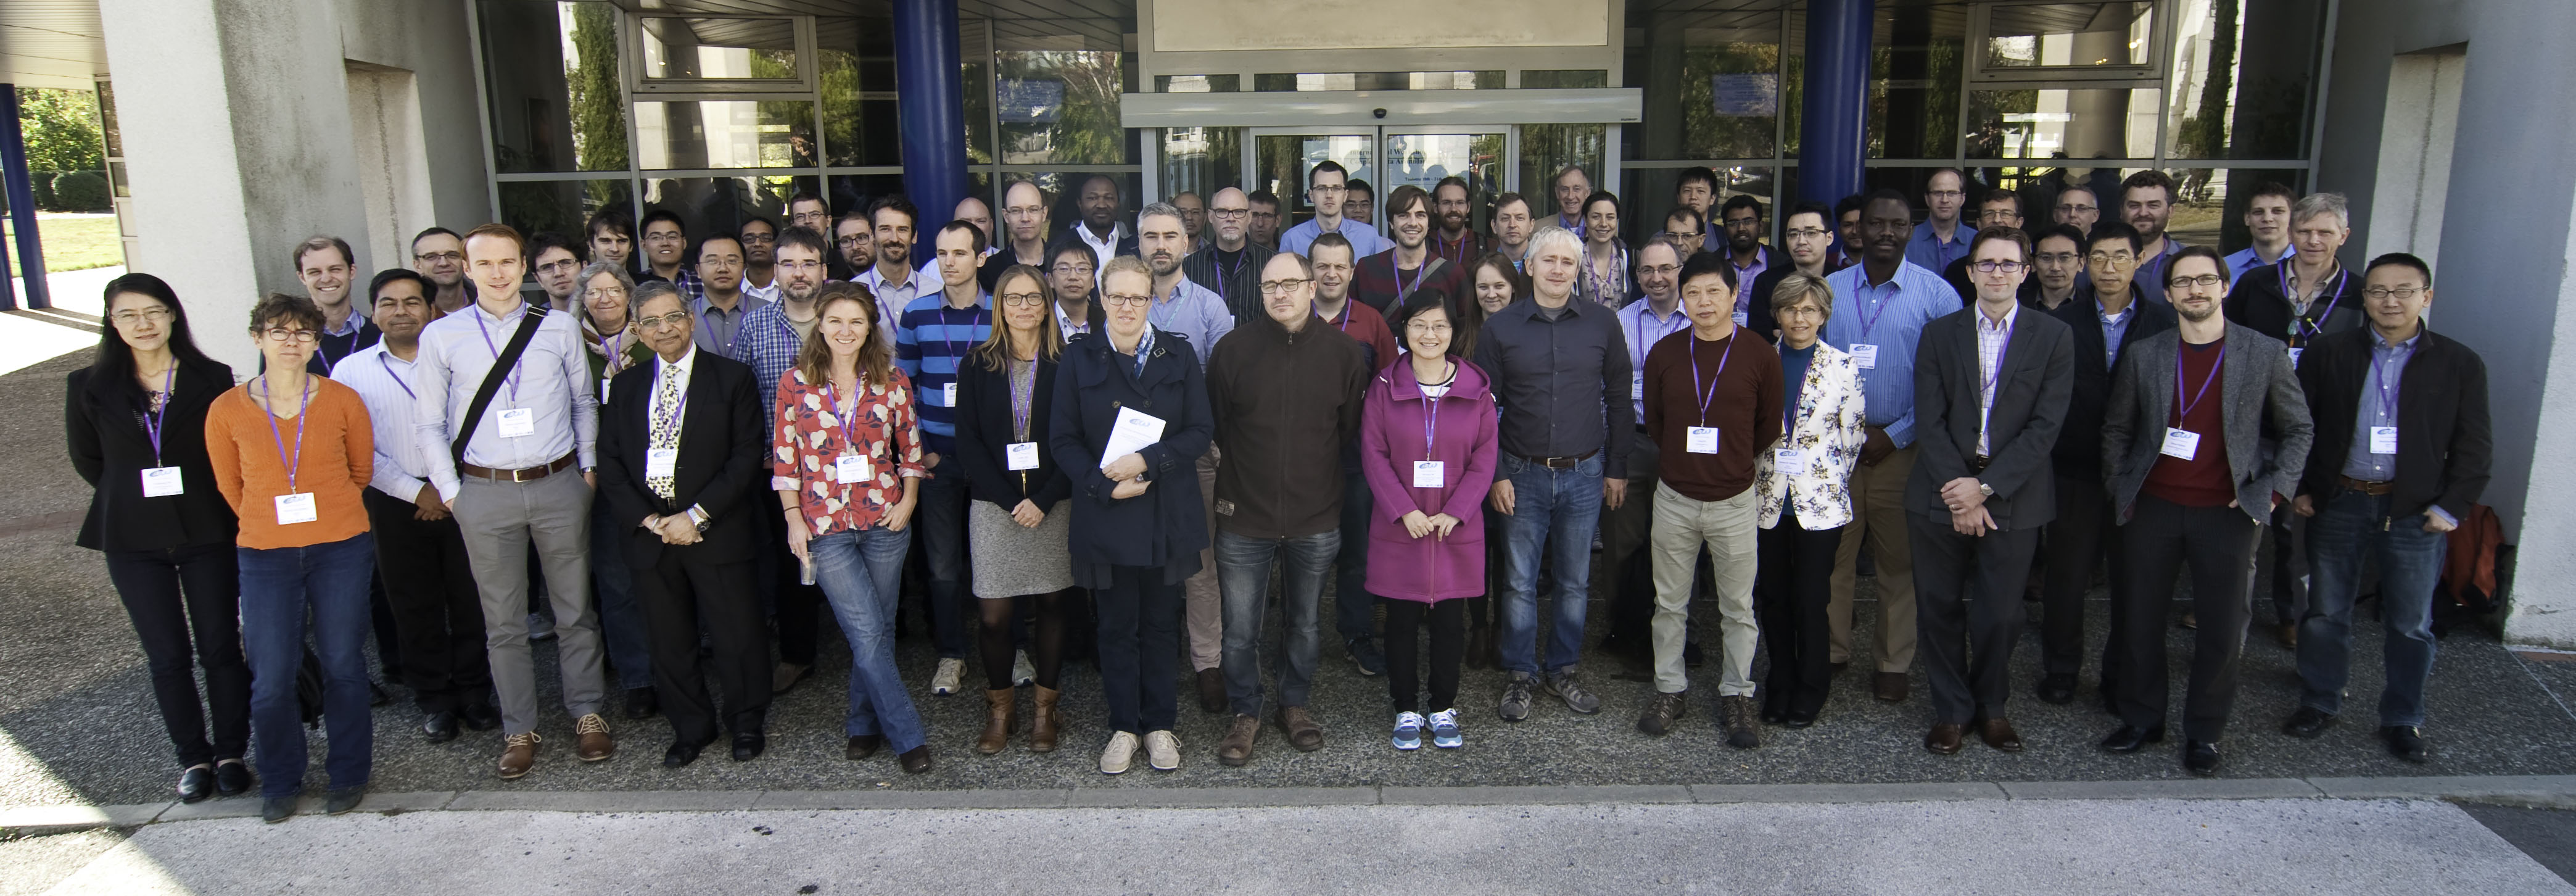 Group photo from the International Workshop on Coupled Data Assimilation at Meteo-France. Source: Meteo-France.